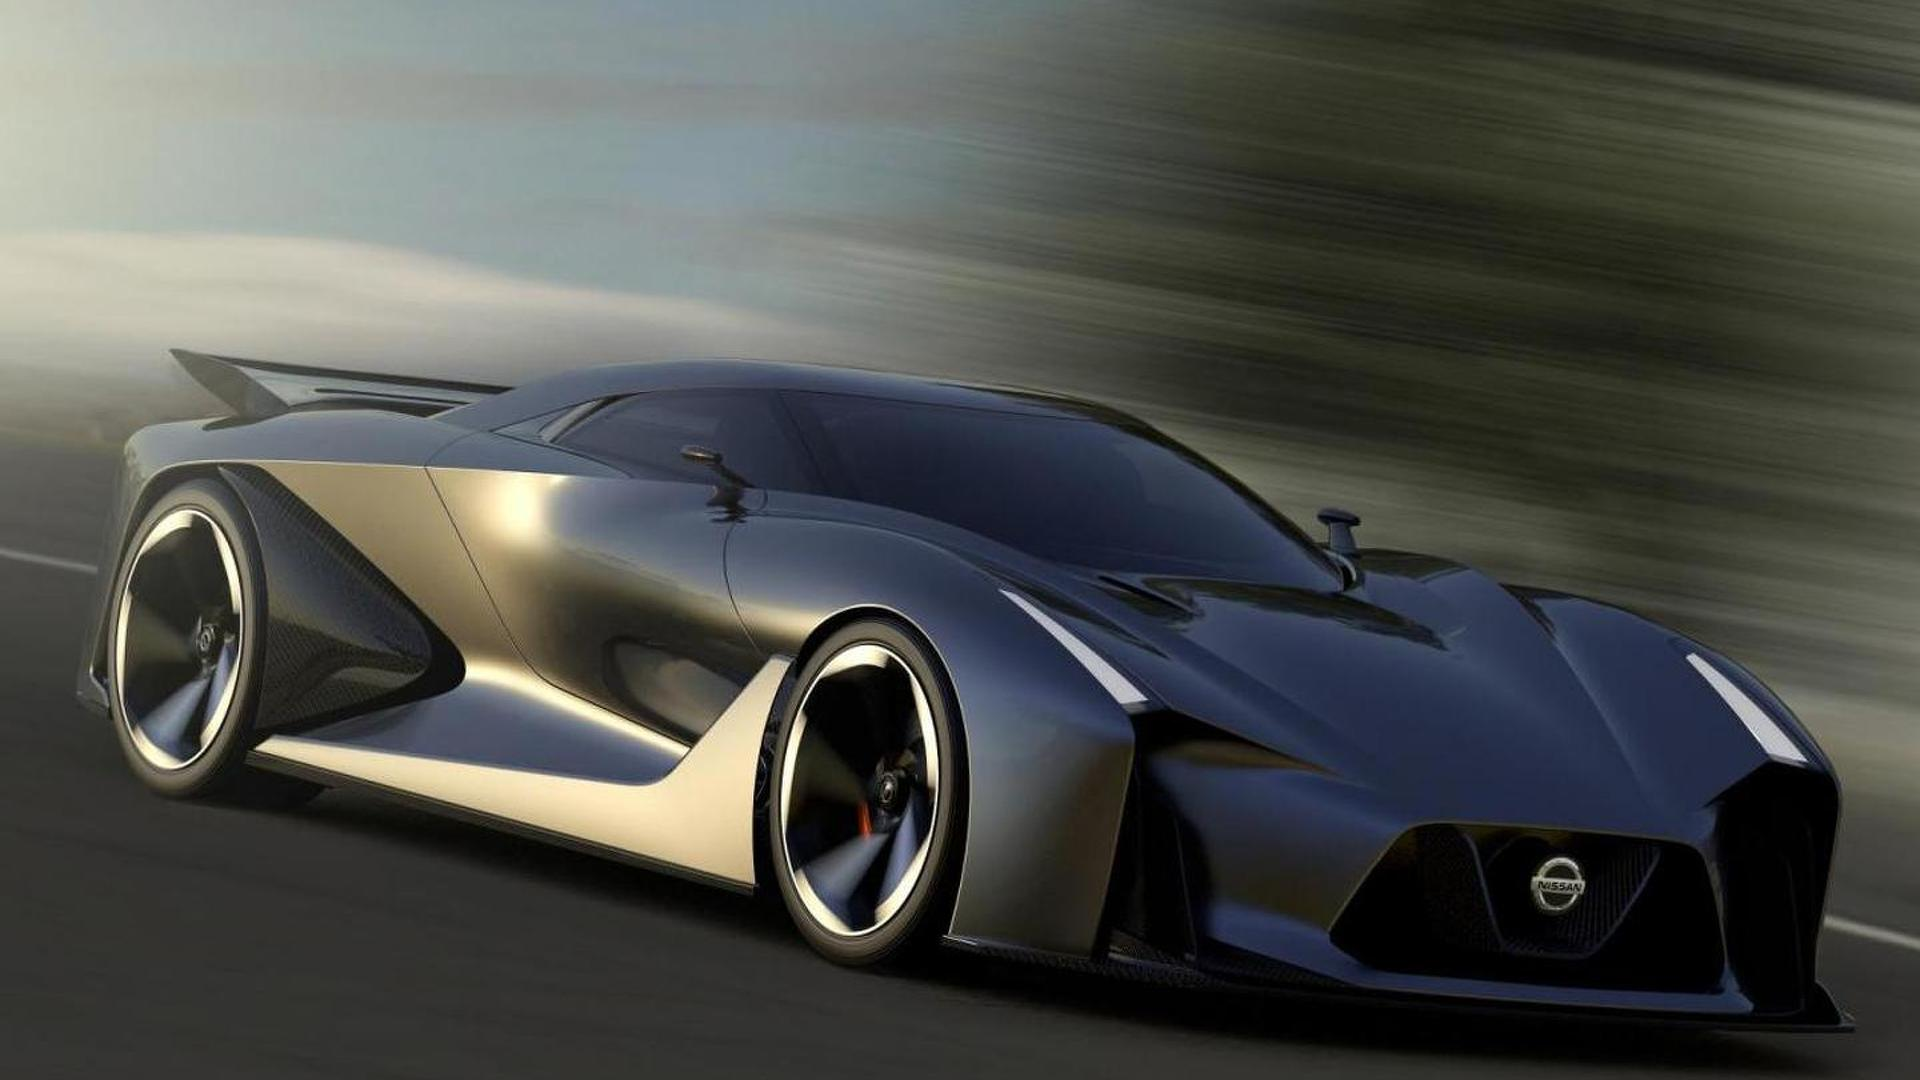 Next Gen Nissan Gt R Could Get 784 Bhp